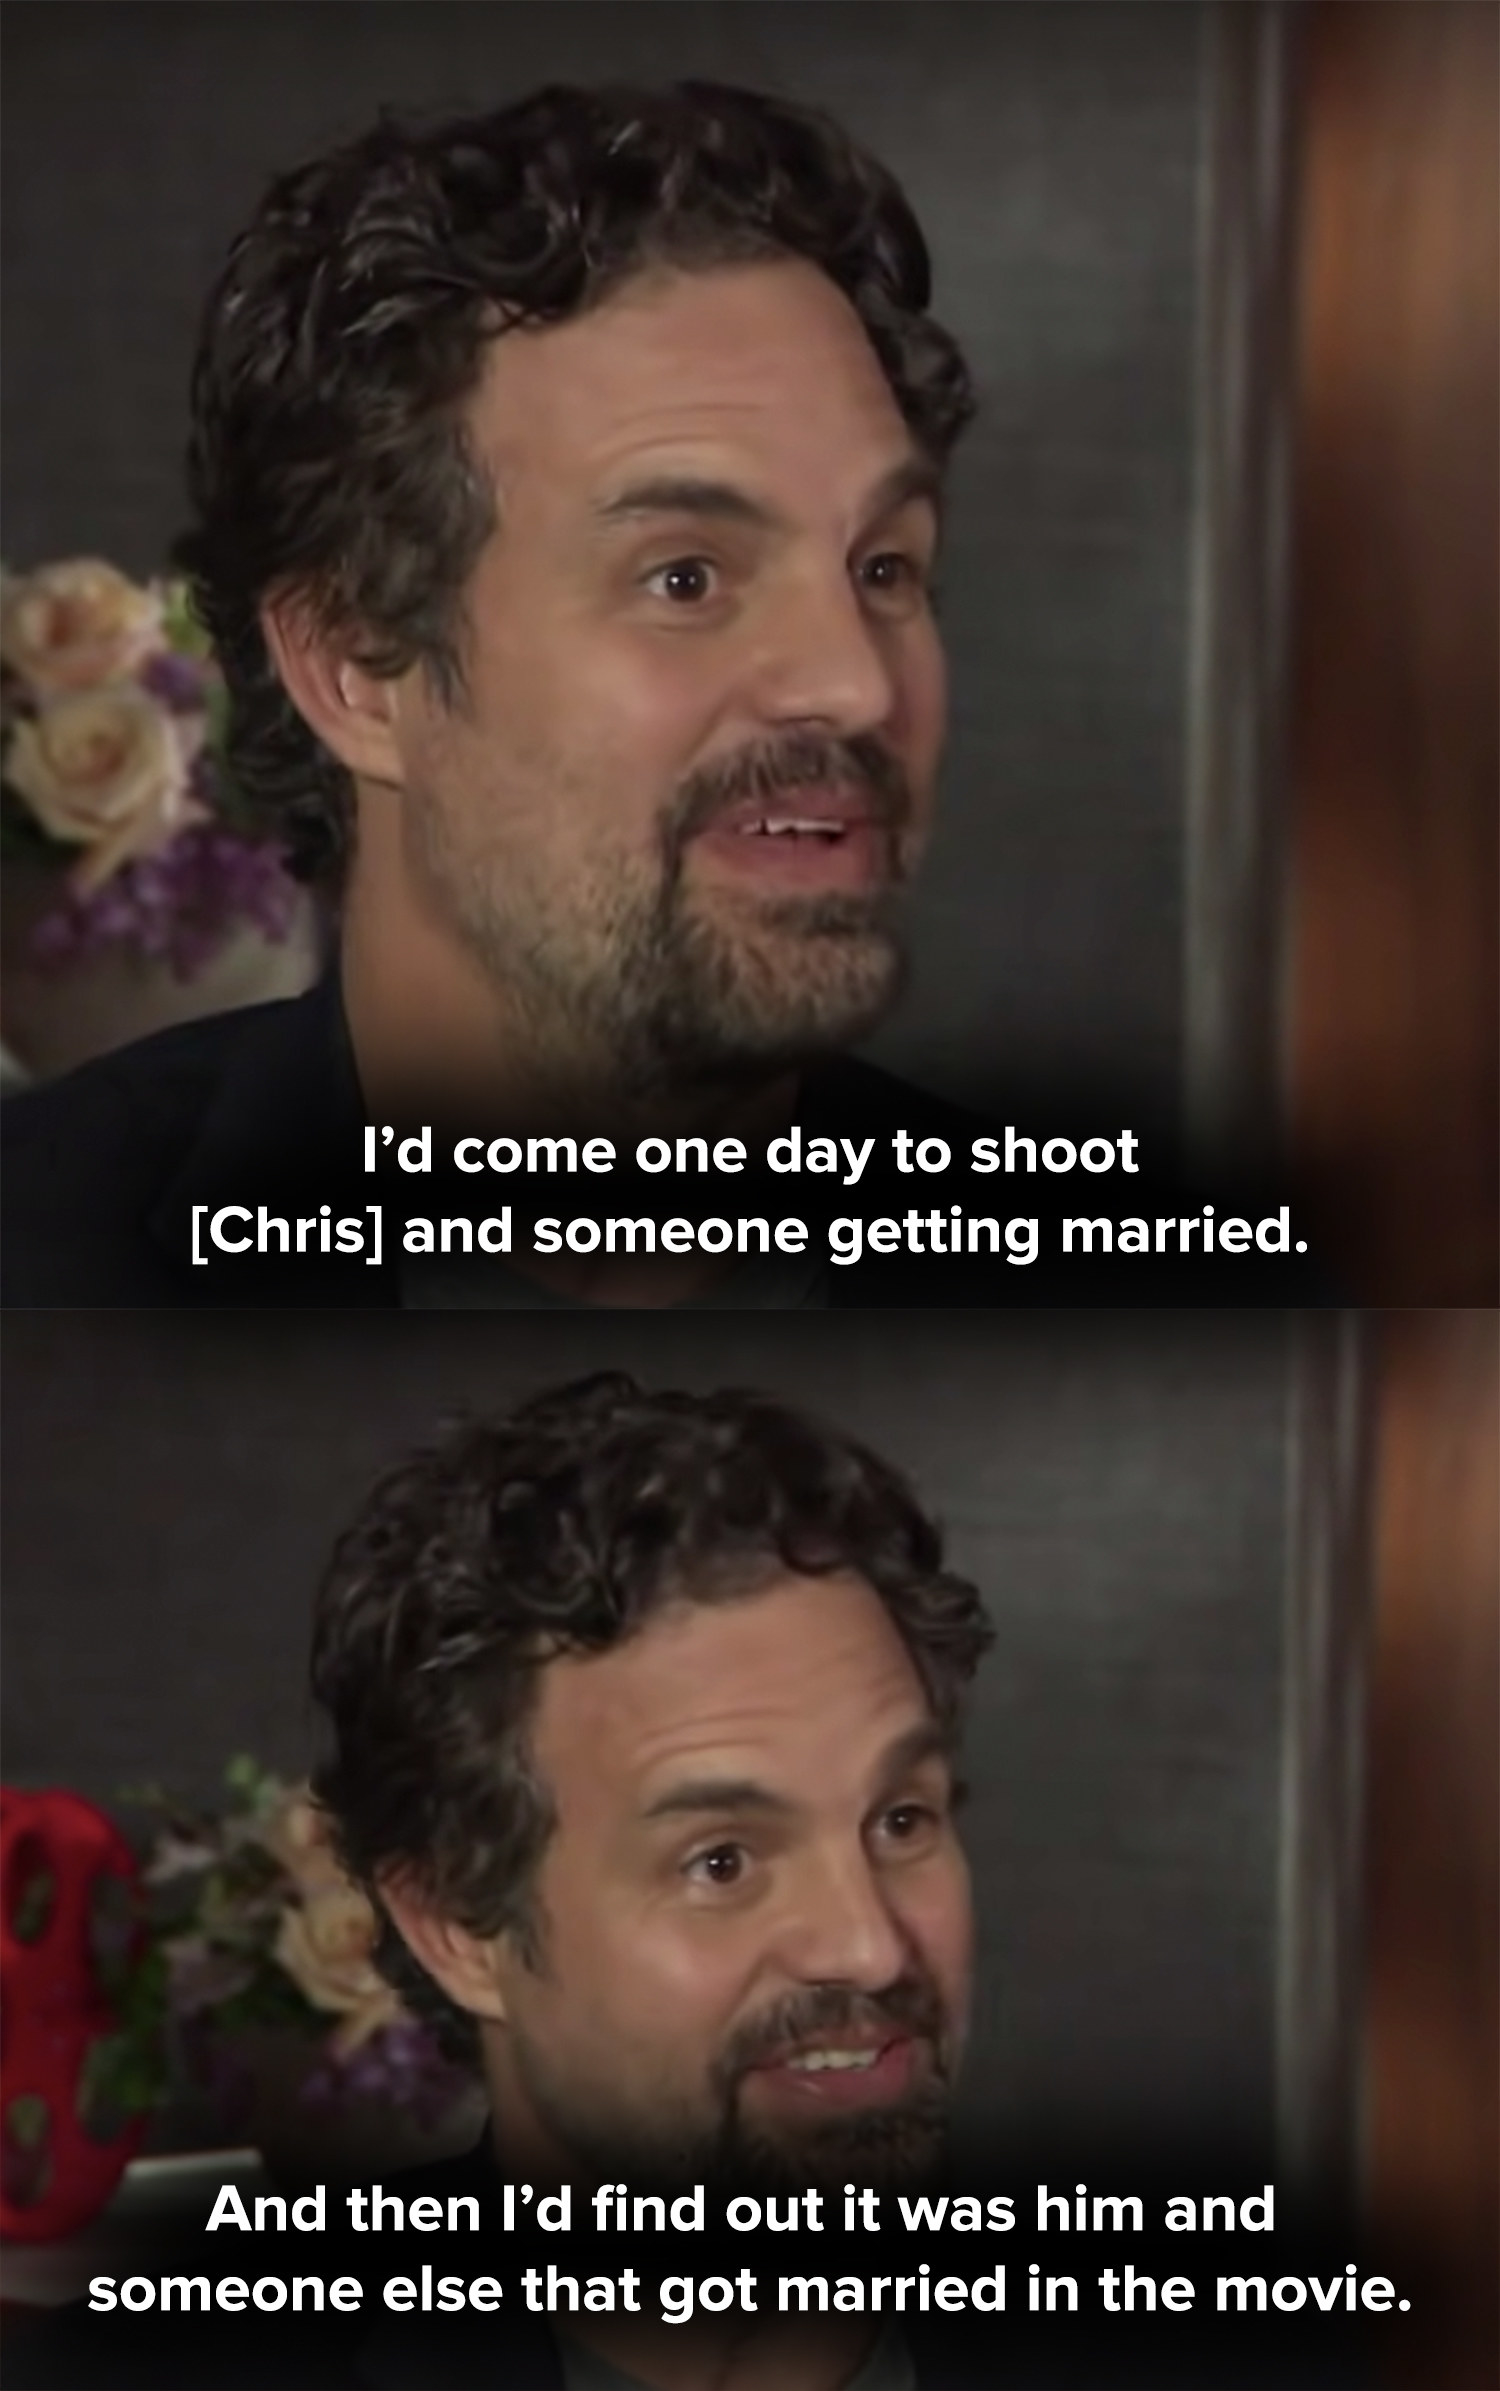 Ruffalo says he'd come in and shoot Chris Evans getting married then find out he married someone else in the movie